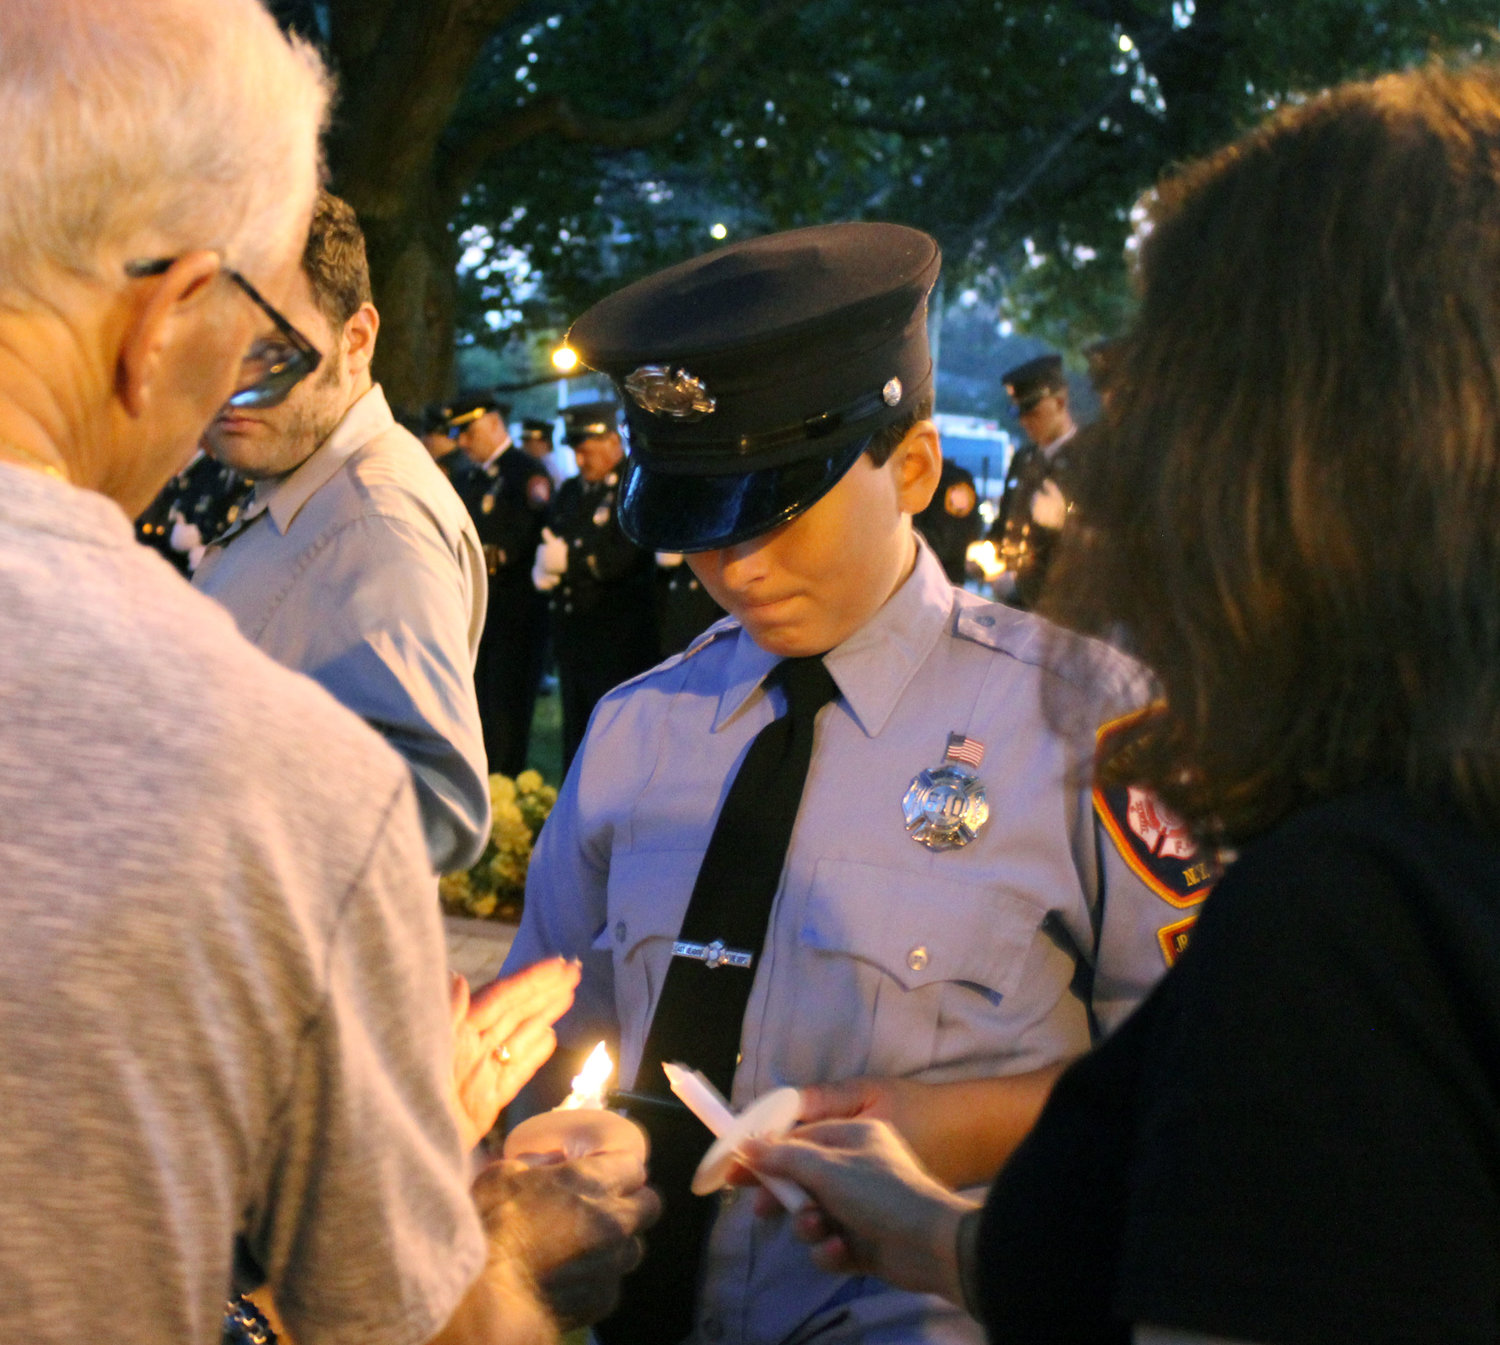 Members of the EMFD's Junior Fire Company greeted attendees and lit their candles for a twilight vigil.